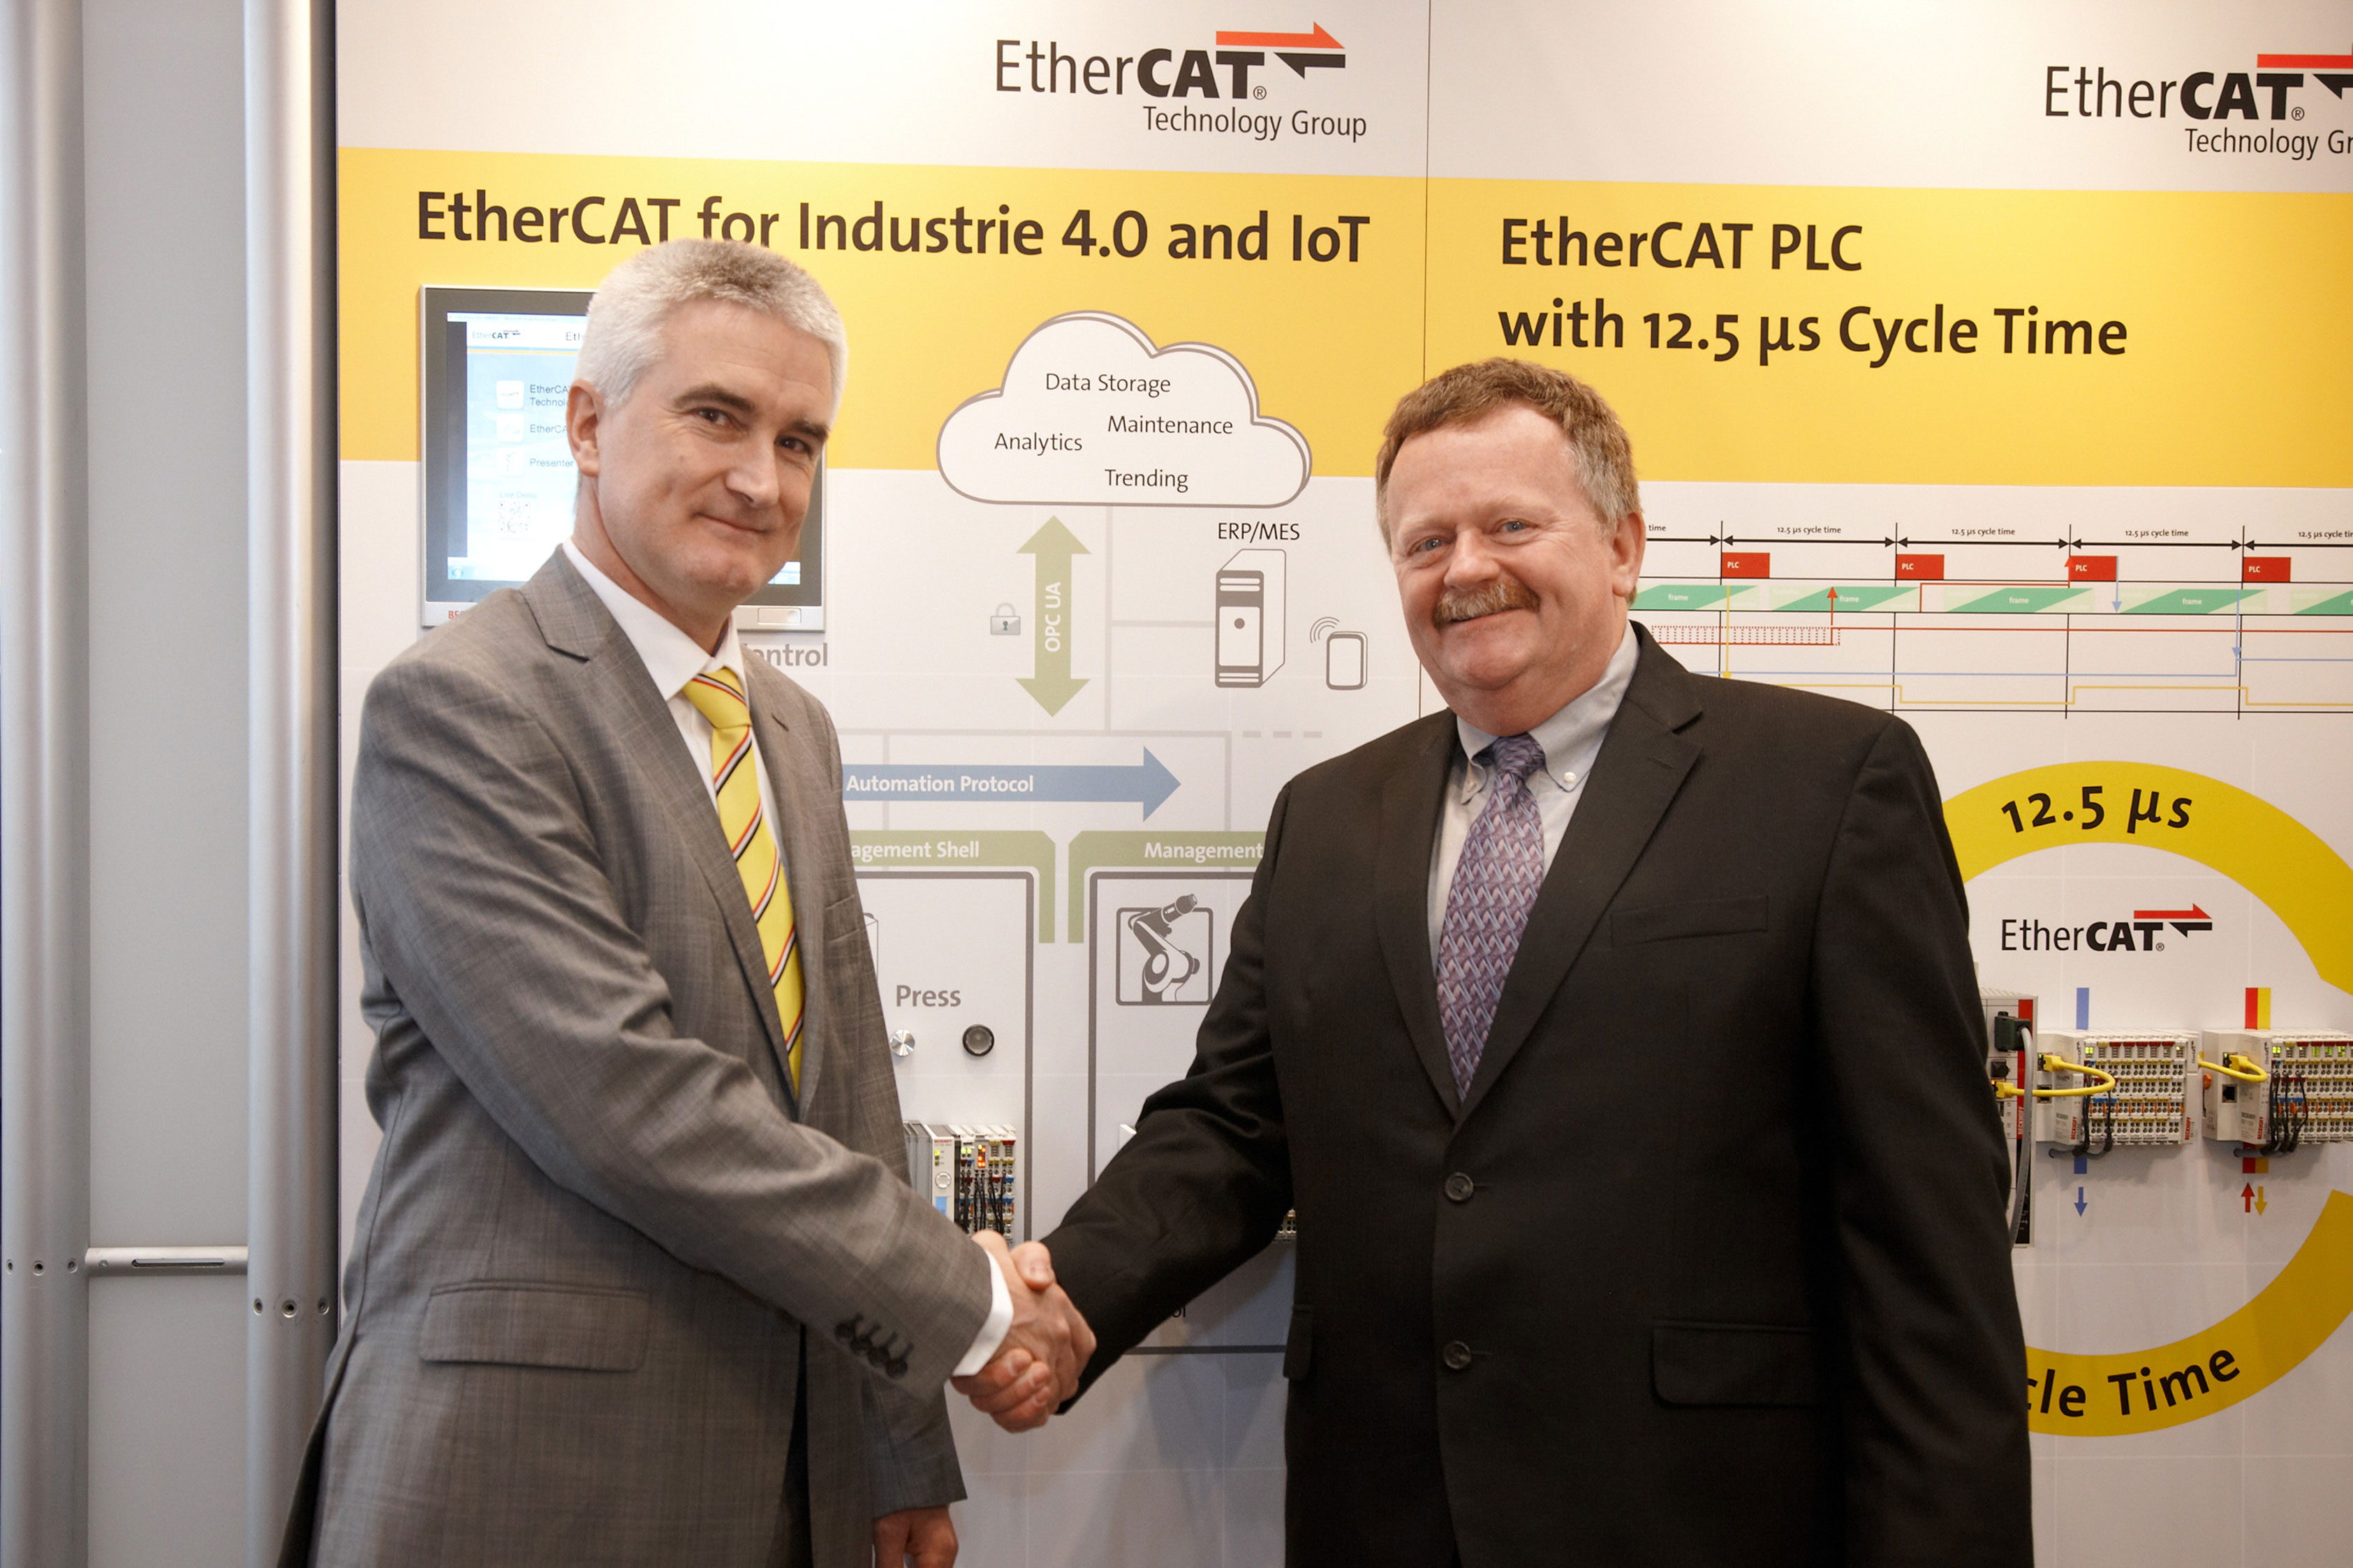 EtherCAT Technology Group and OPC Foundation join forces for common IoT interfaces